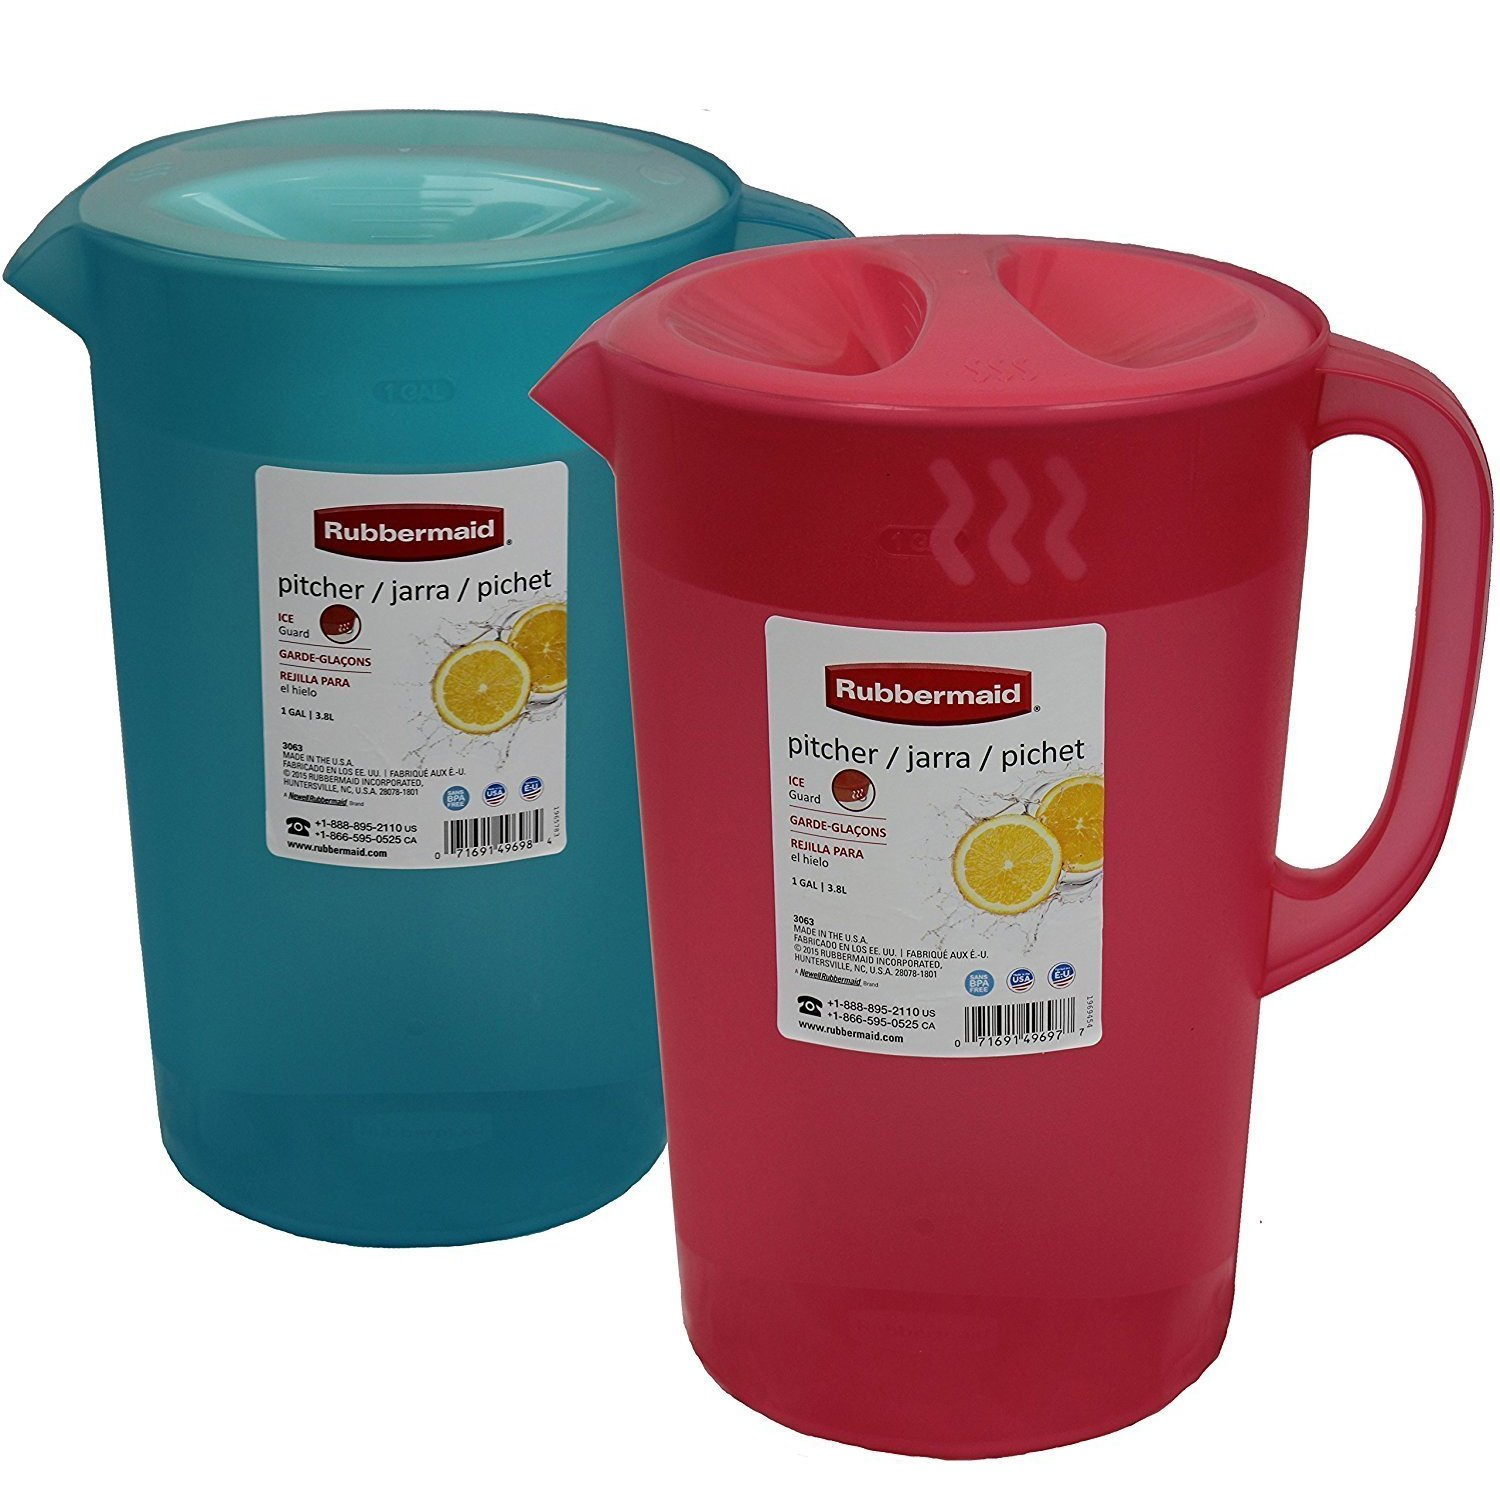 Rubermaid B01IDSBI9W Rubbermaid 2pk Classic Pitcher, Pack of 2 Colors, 1 Gallon, Red/Blue